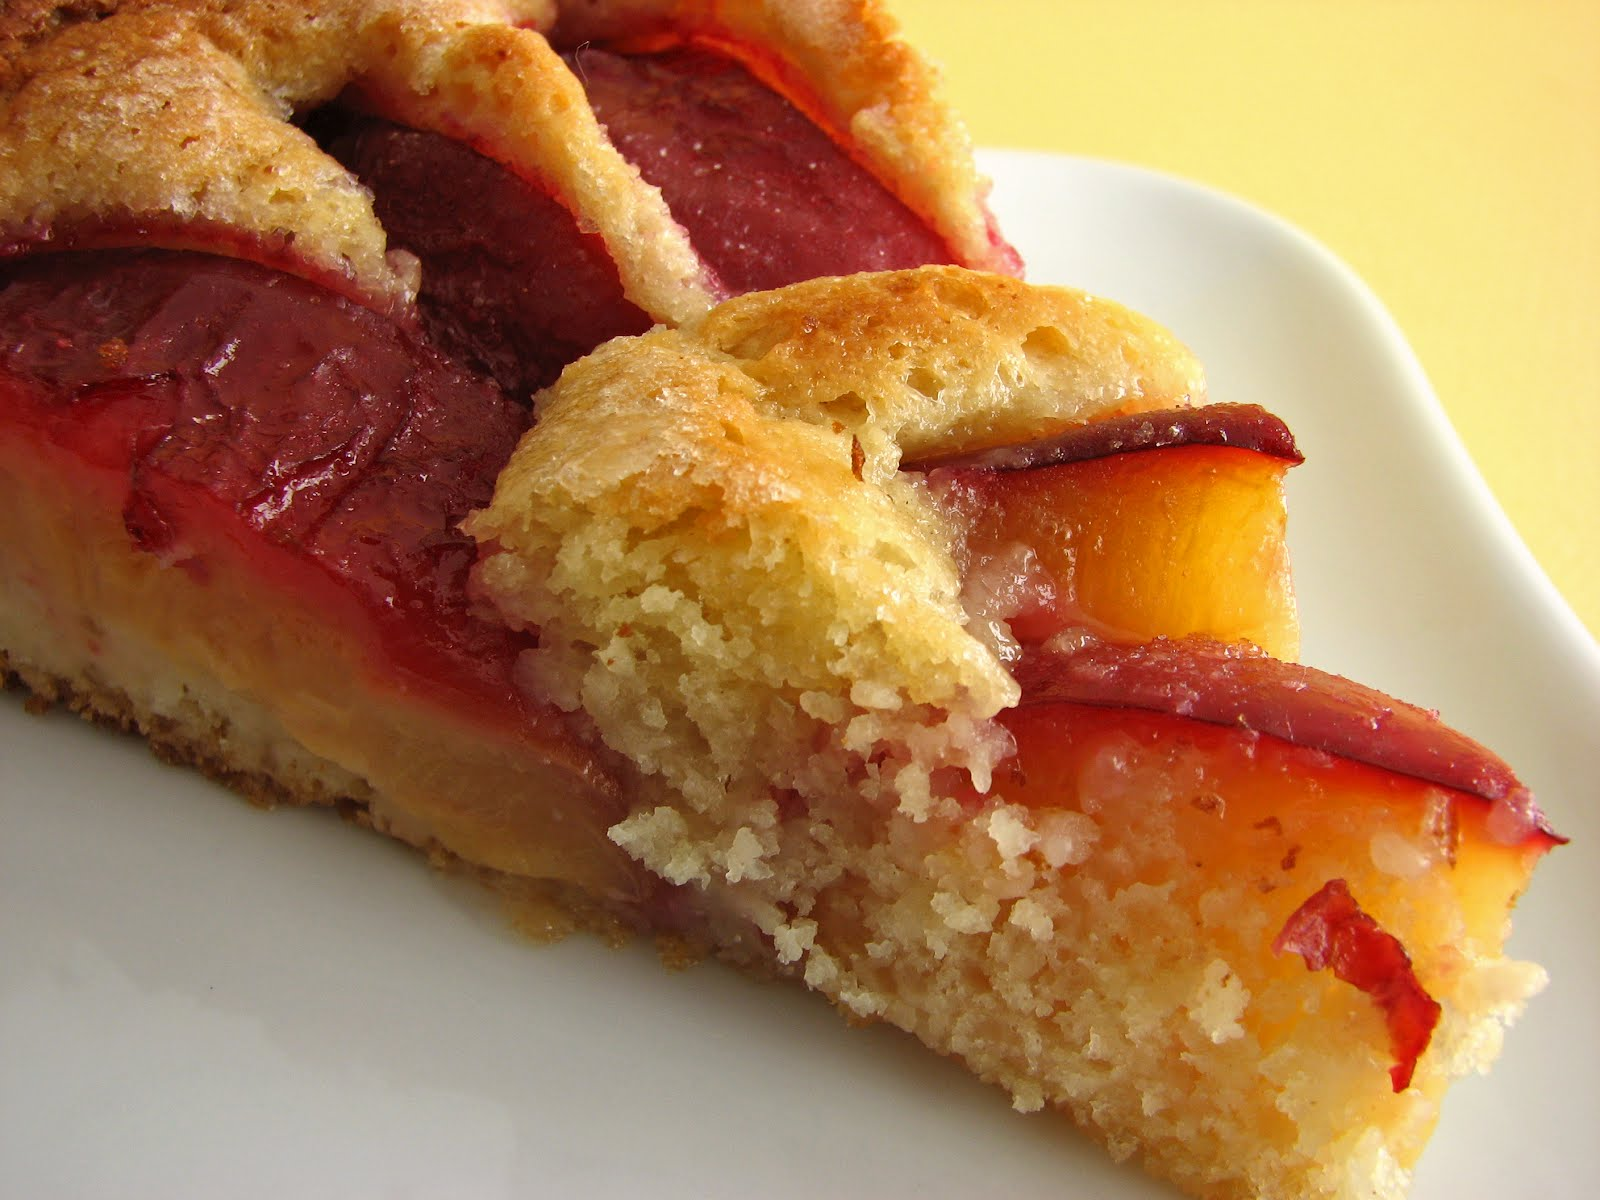 :pastry studio: Yeasted Plum Tart